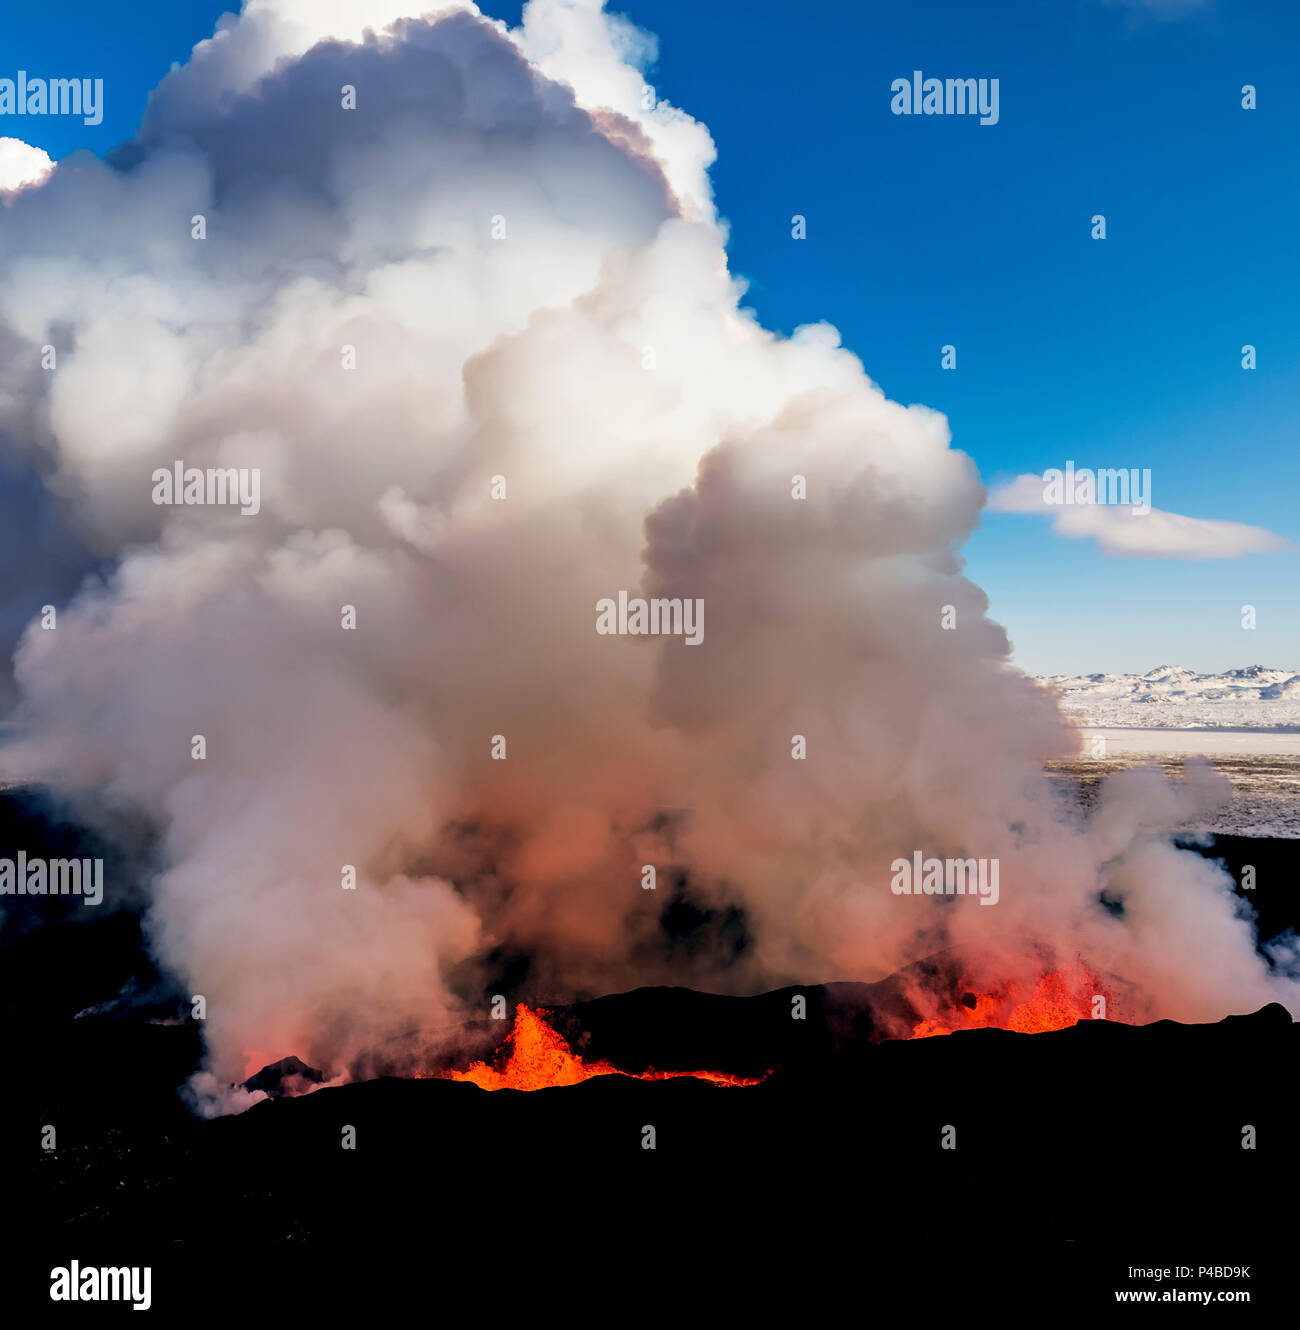 August 29, 2014, a fissure eruption occurred in Holuhraun at the northern end of a magma intrusion which had moved progressively north, from the Bardarbunga volcano. Bardarbunga is a stratovolcano located under Vatnajokull, Iceland's most extensive glacier. Picture Date-Sept. 28, 2014 Stock Photo